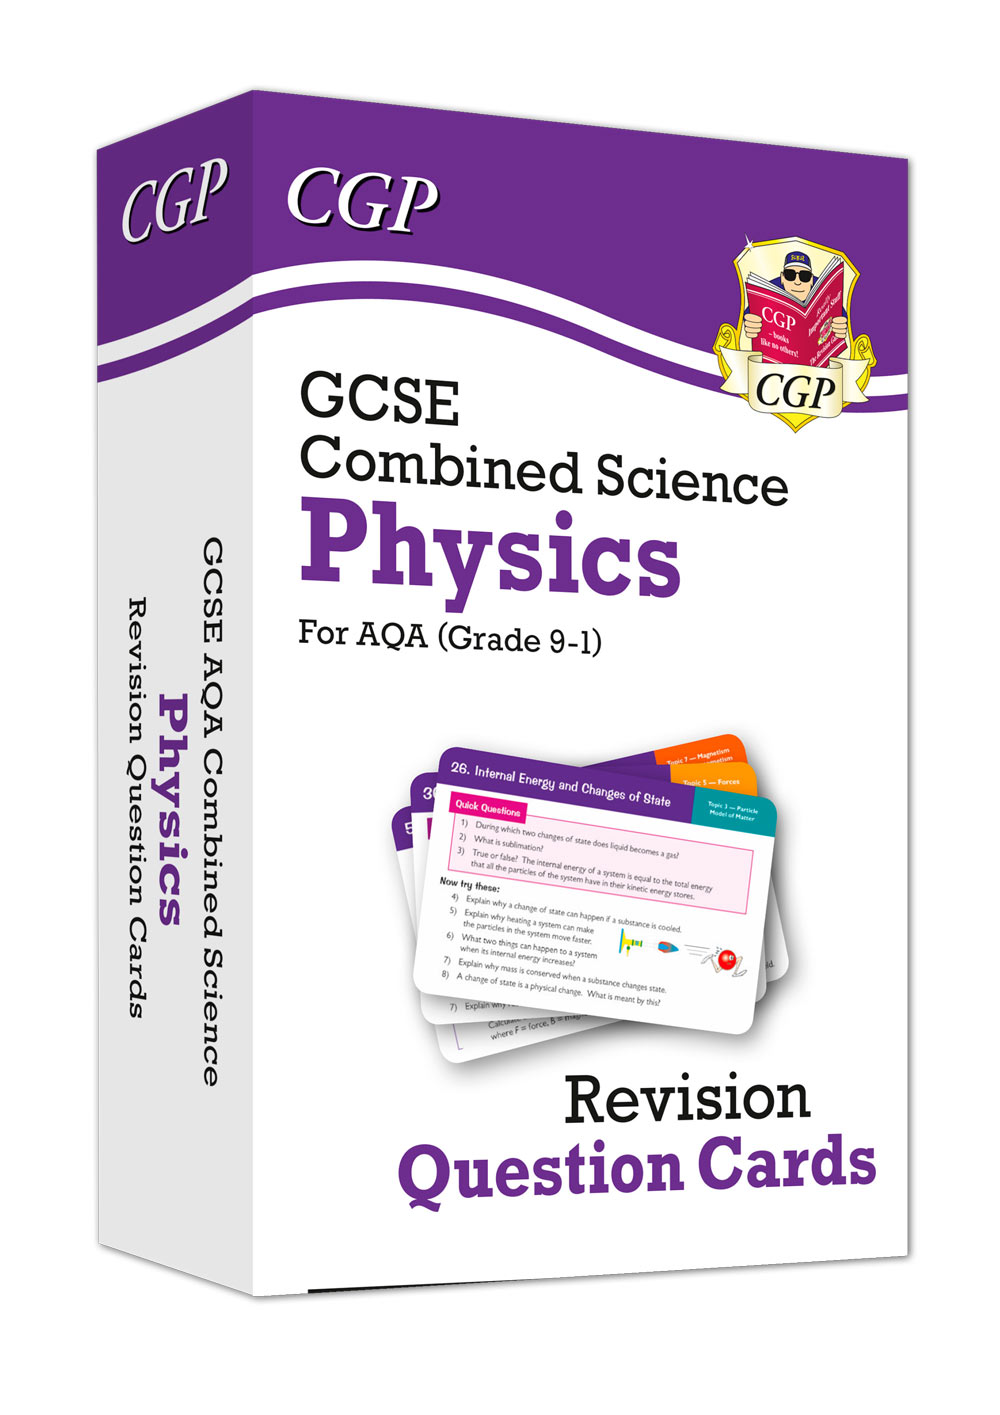 SCPAF41 - 9-1 GCSE Combined Science: Physics AQA Revision Question Cards